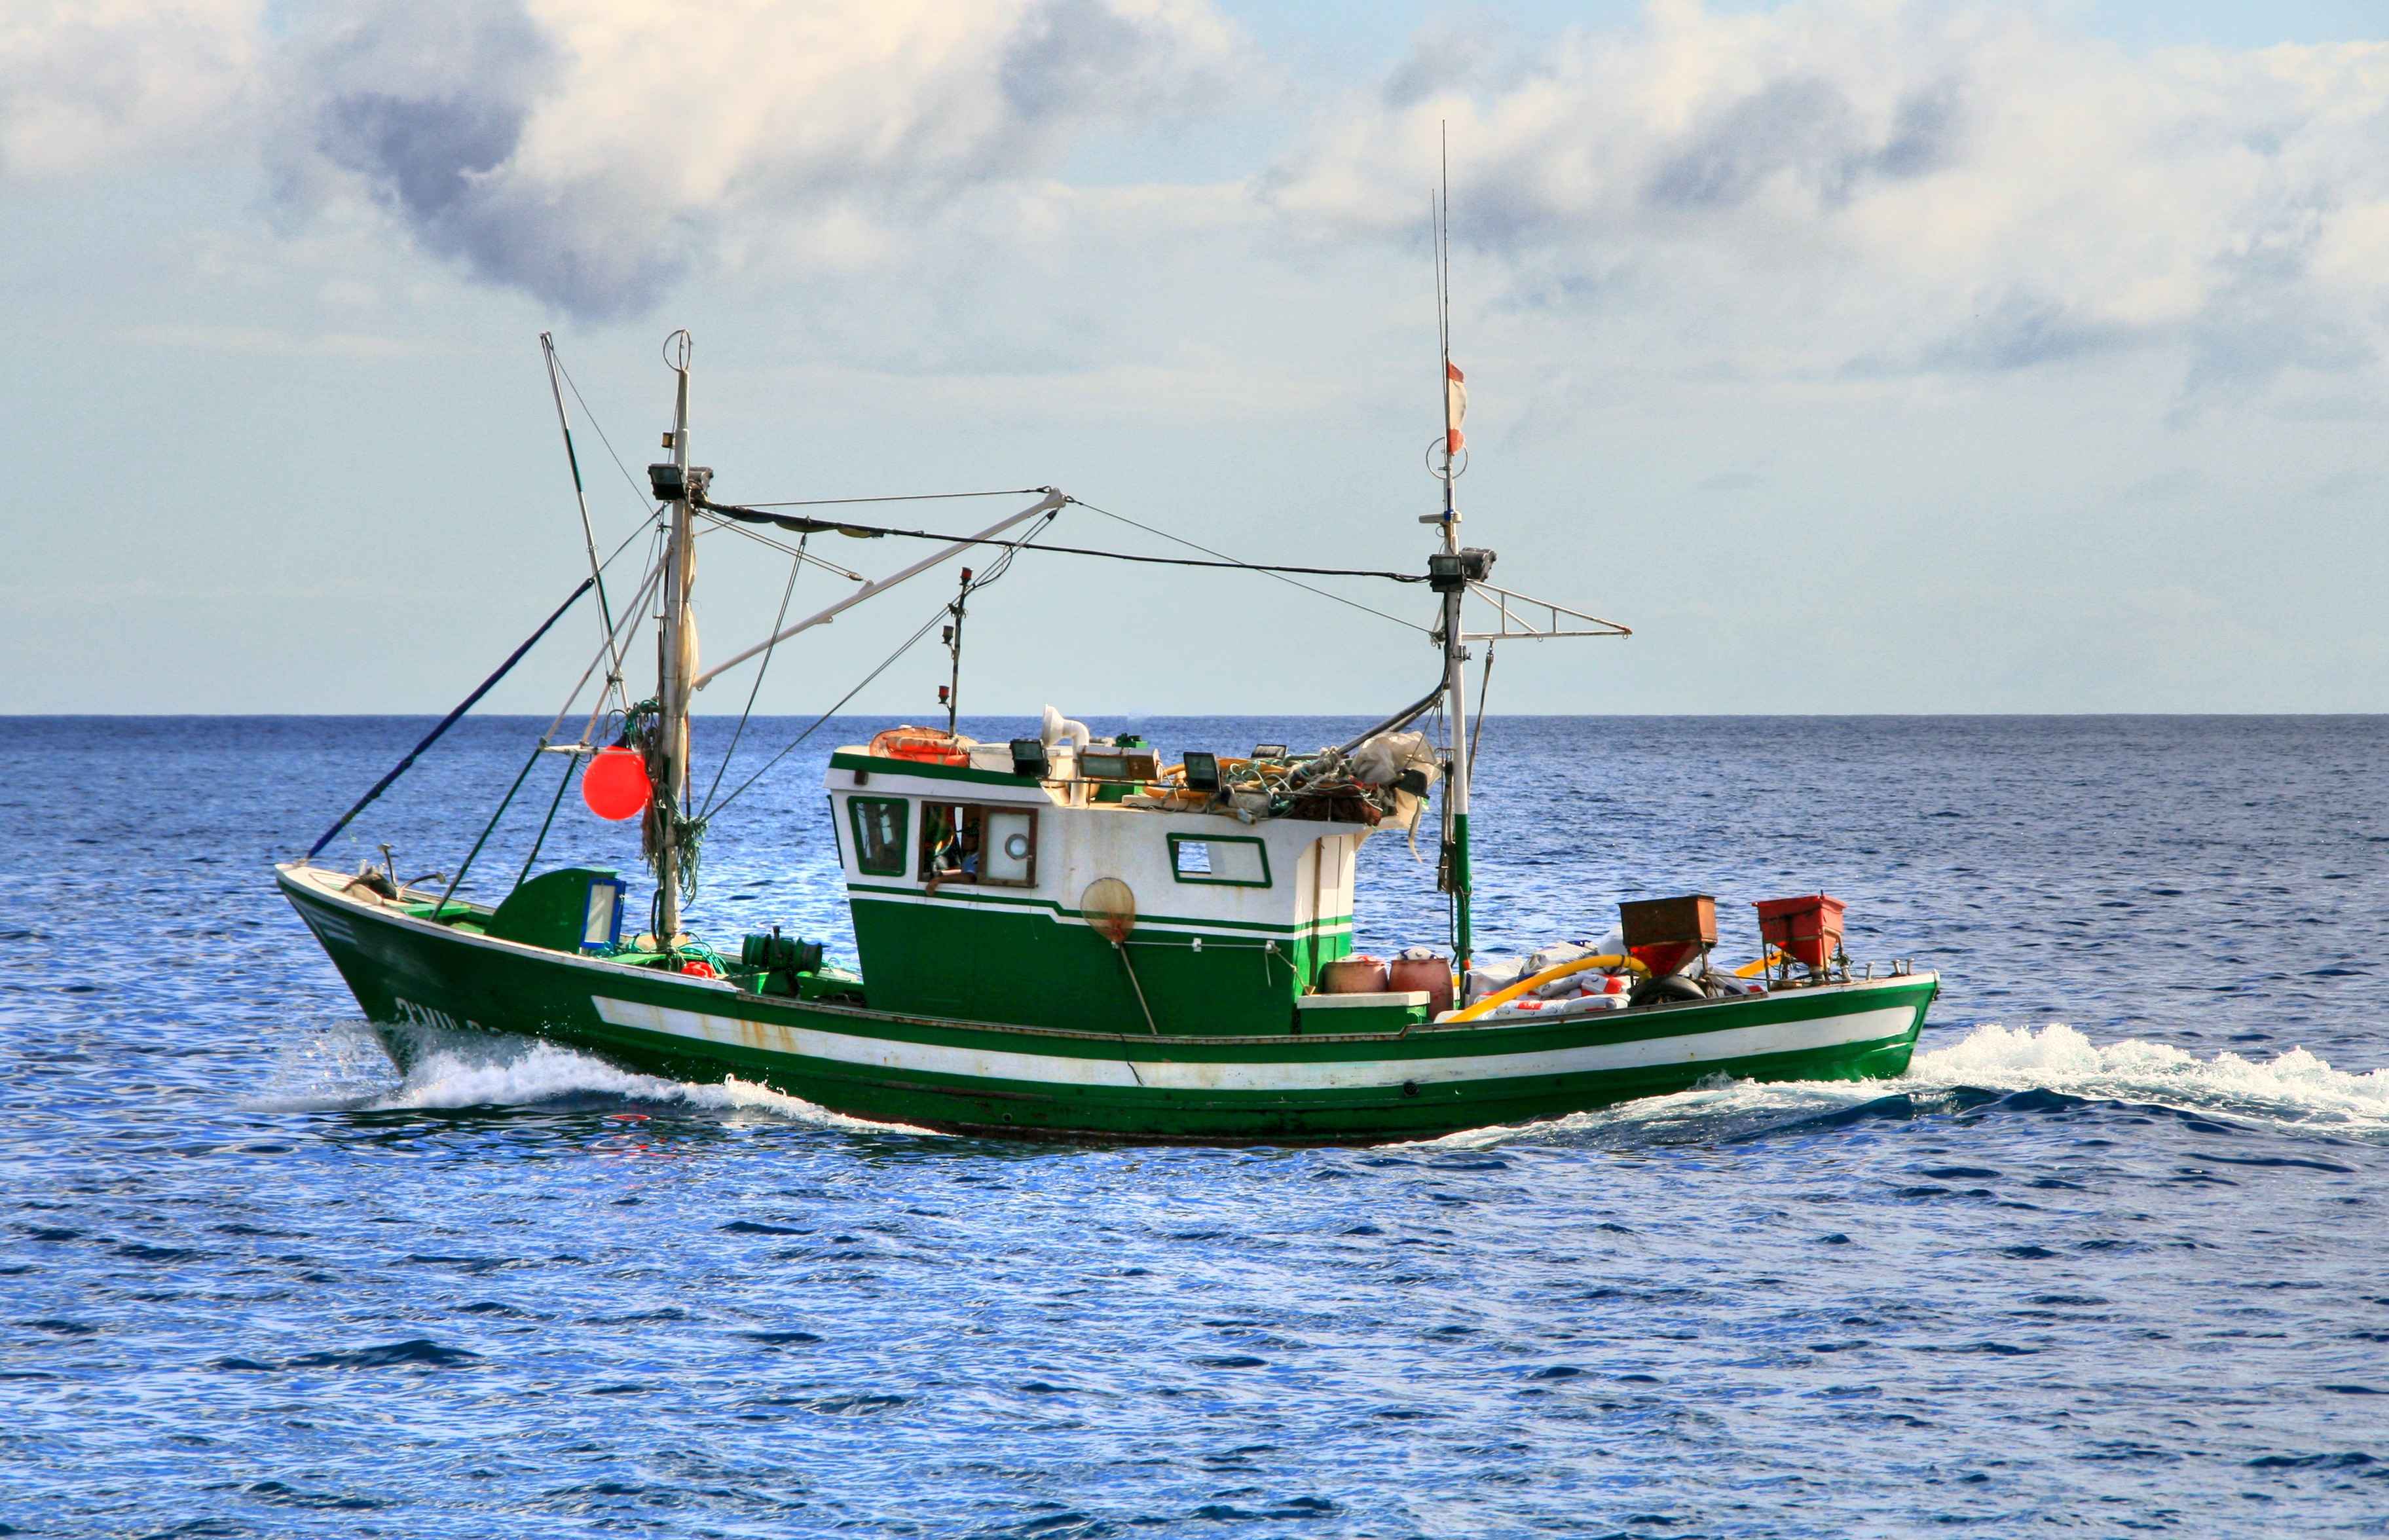 File:Fishing boat in the Canary Islands.jpg - Wikimedia Commons